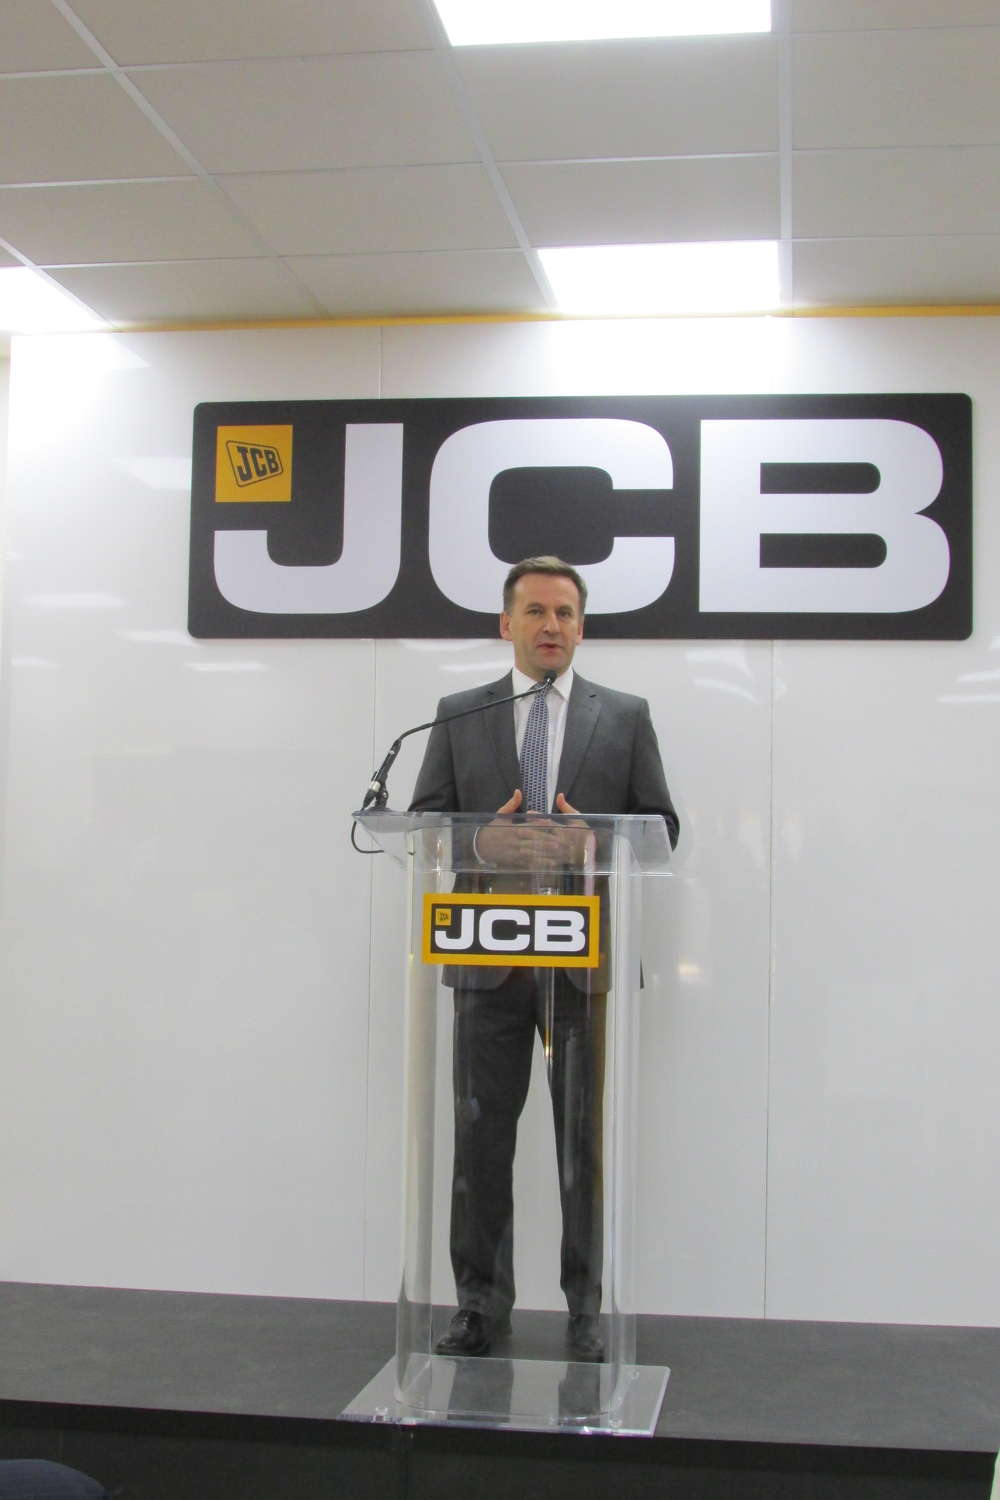 Graeme MacDonald, CEO of JCB, addresses media during the company's press conference in the Gold Lot.